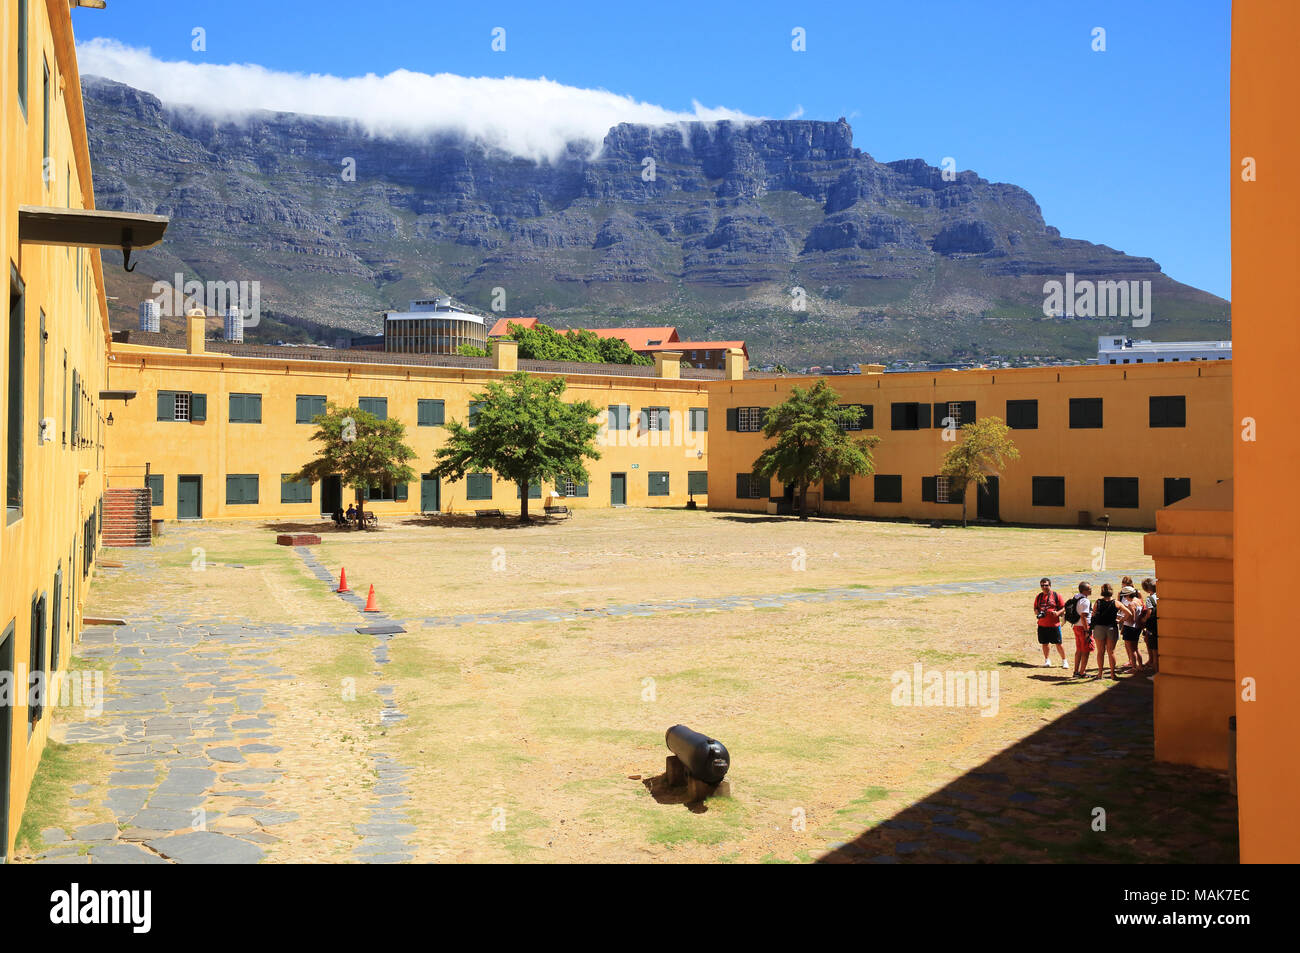 Courtyard in the Castle of Good Hope, a bastion fort, built by the Dutch East India Company between 1666 and 1679, in Cape Town, South Africa - Stock Image